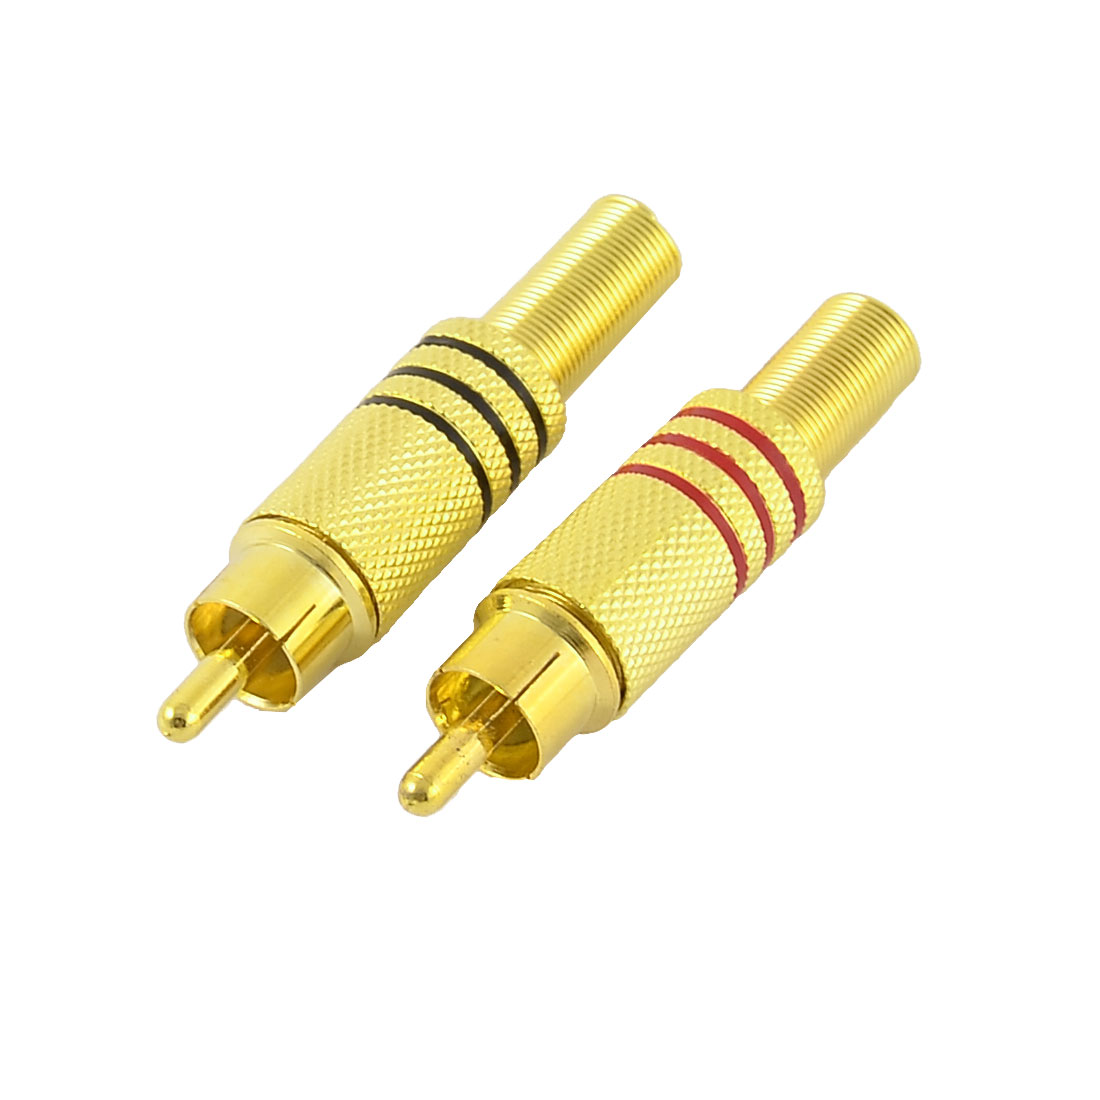 2pcs Metal Spring End RCA Male Plug Jack Audio AV Video Cable Connector Adapter